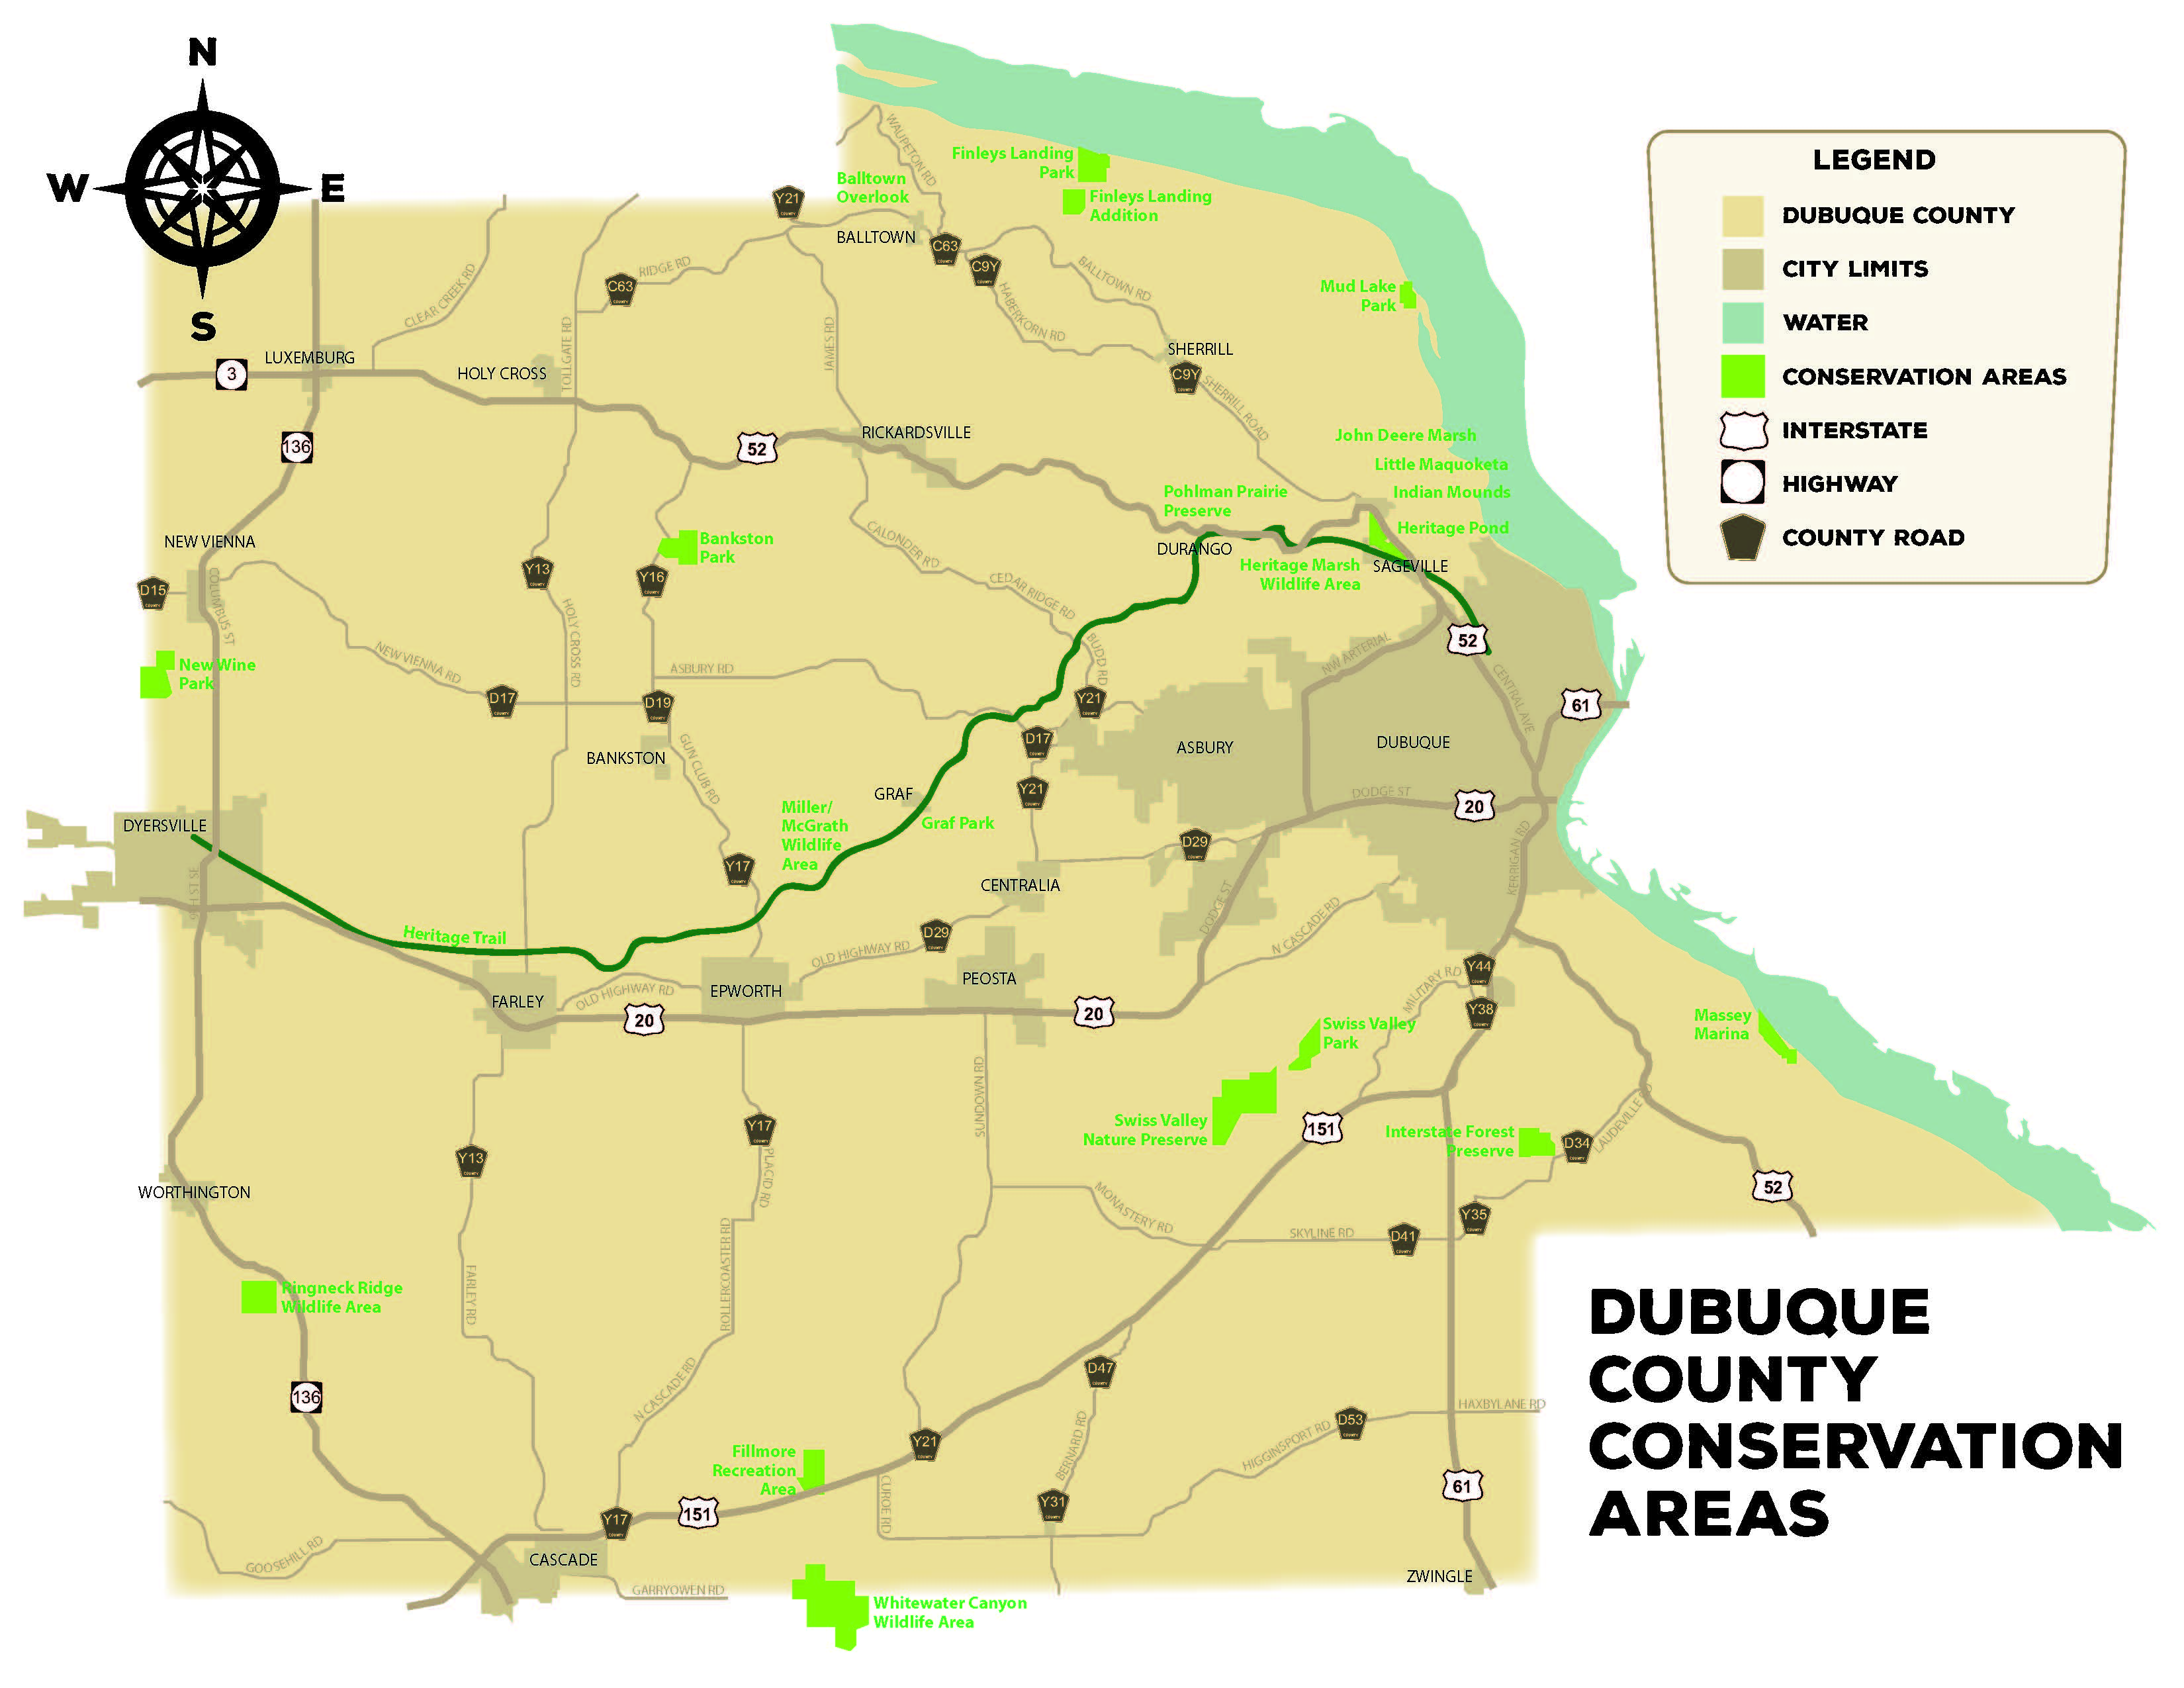 County Parks in Dubuque County, Iowa on